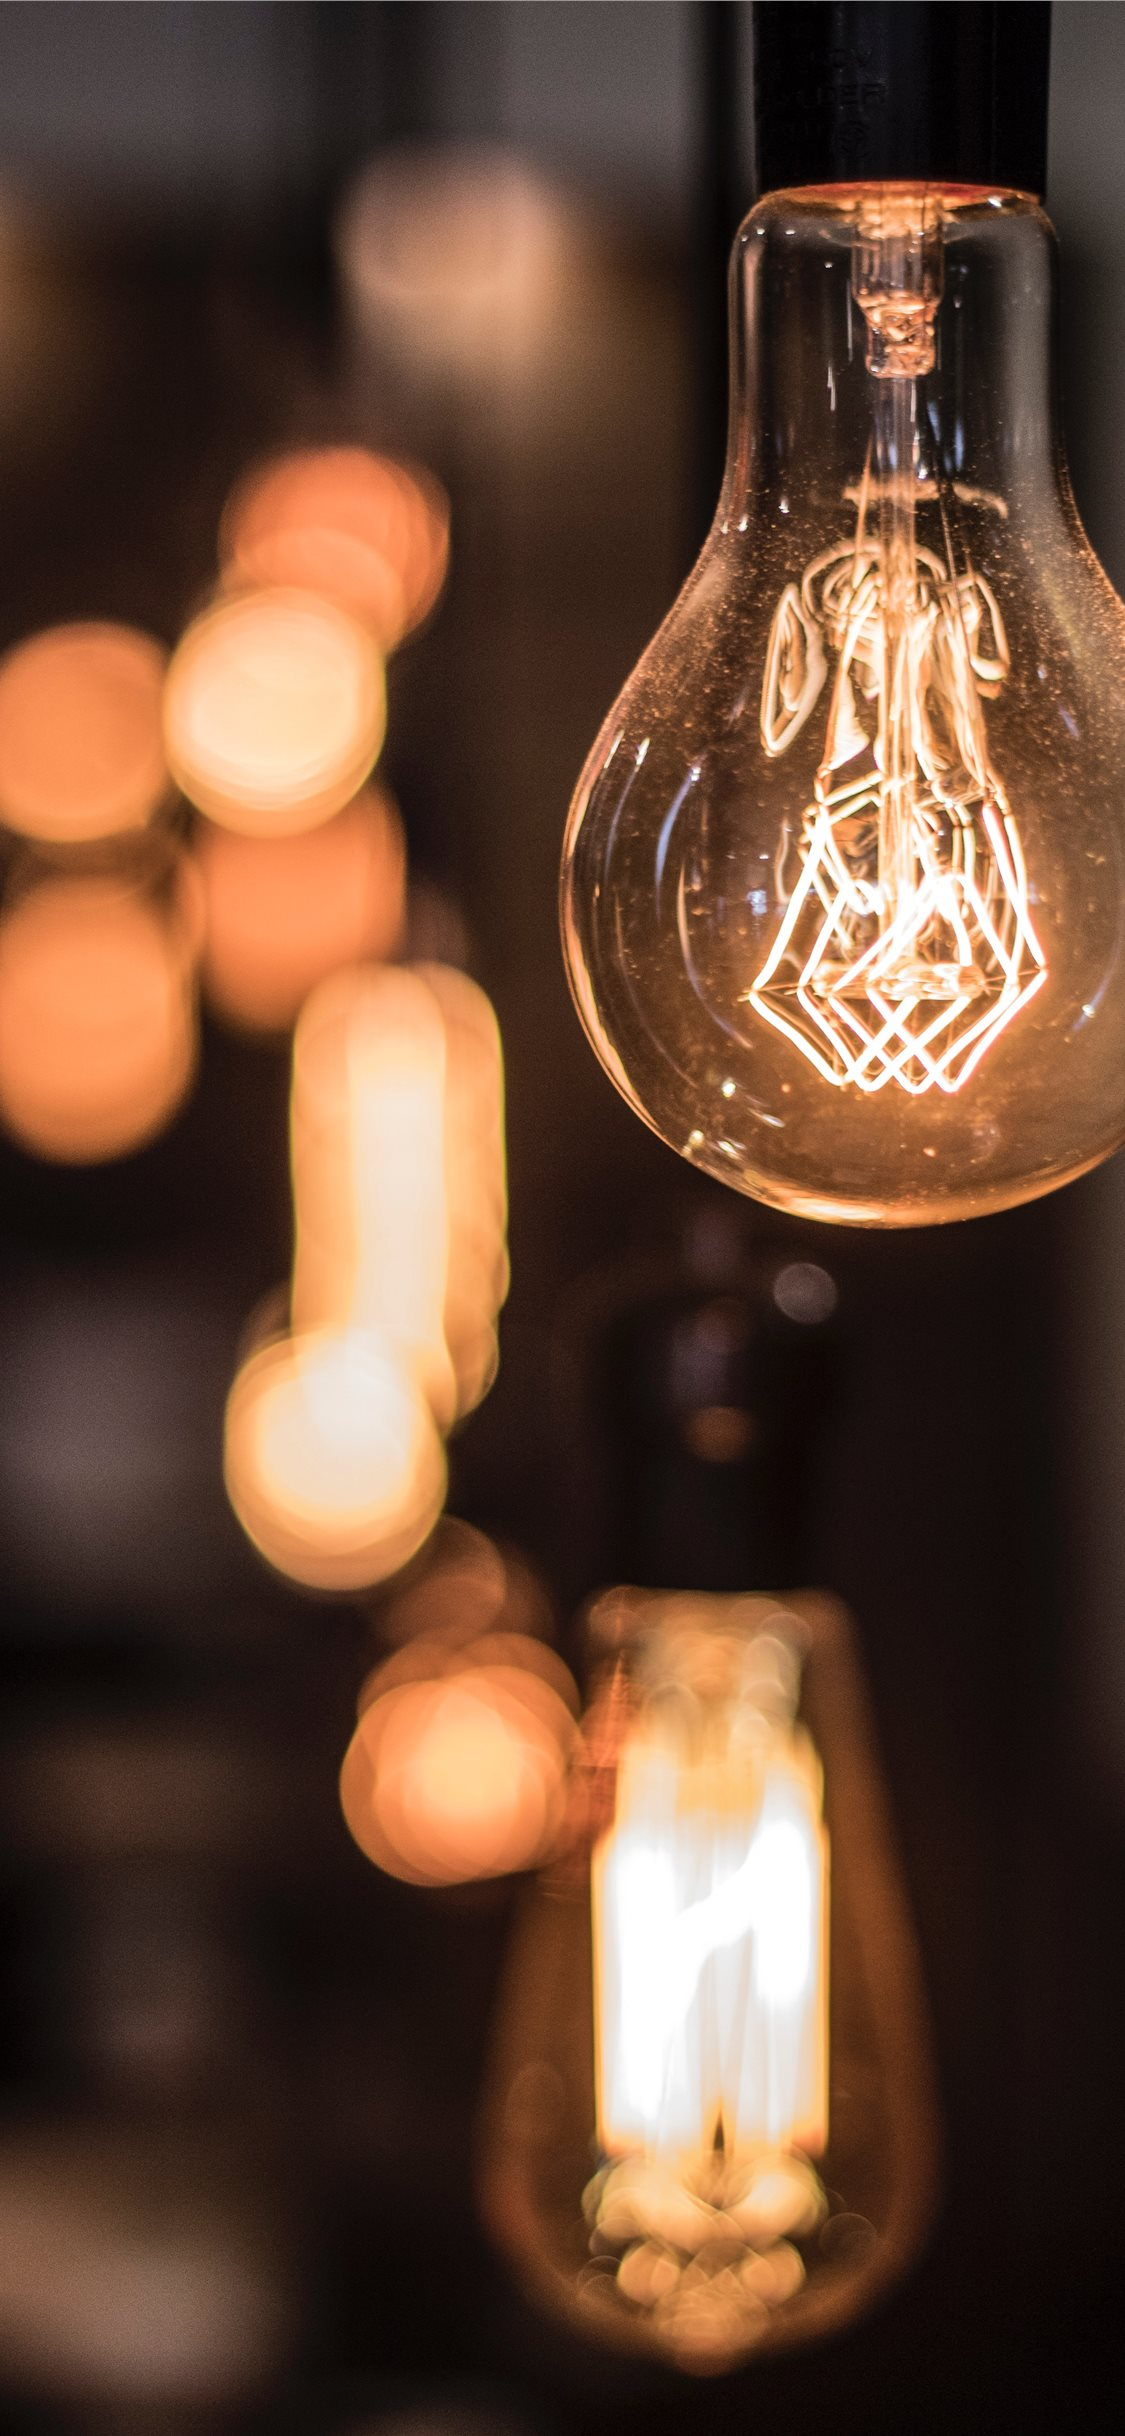 Vintage lightbulb inside a coffee shop in Mexico C iPhone